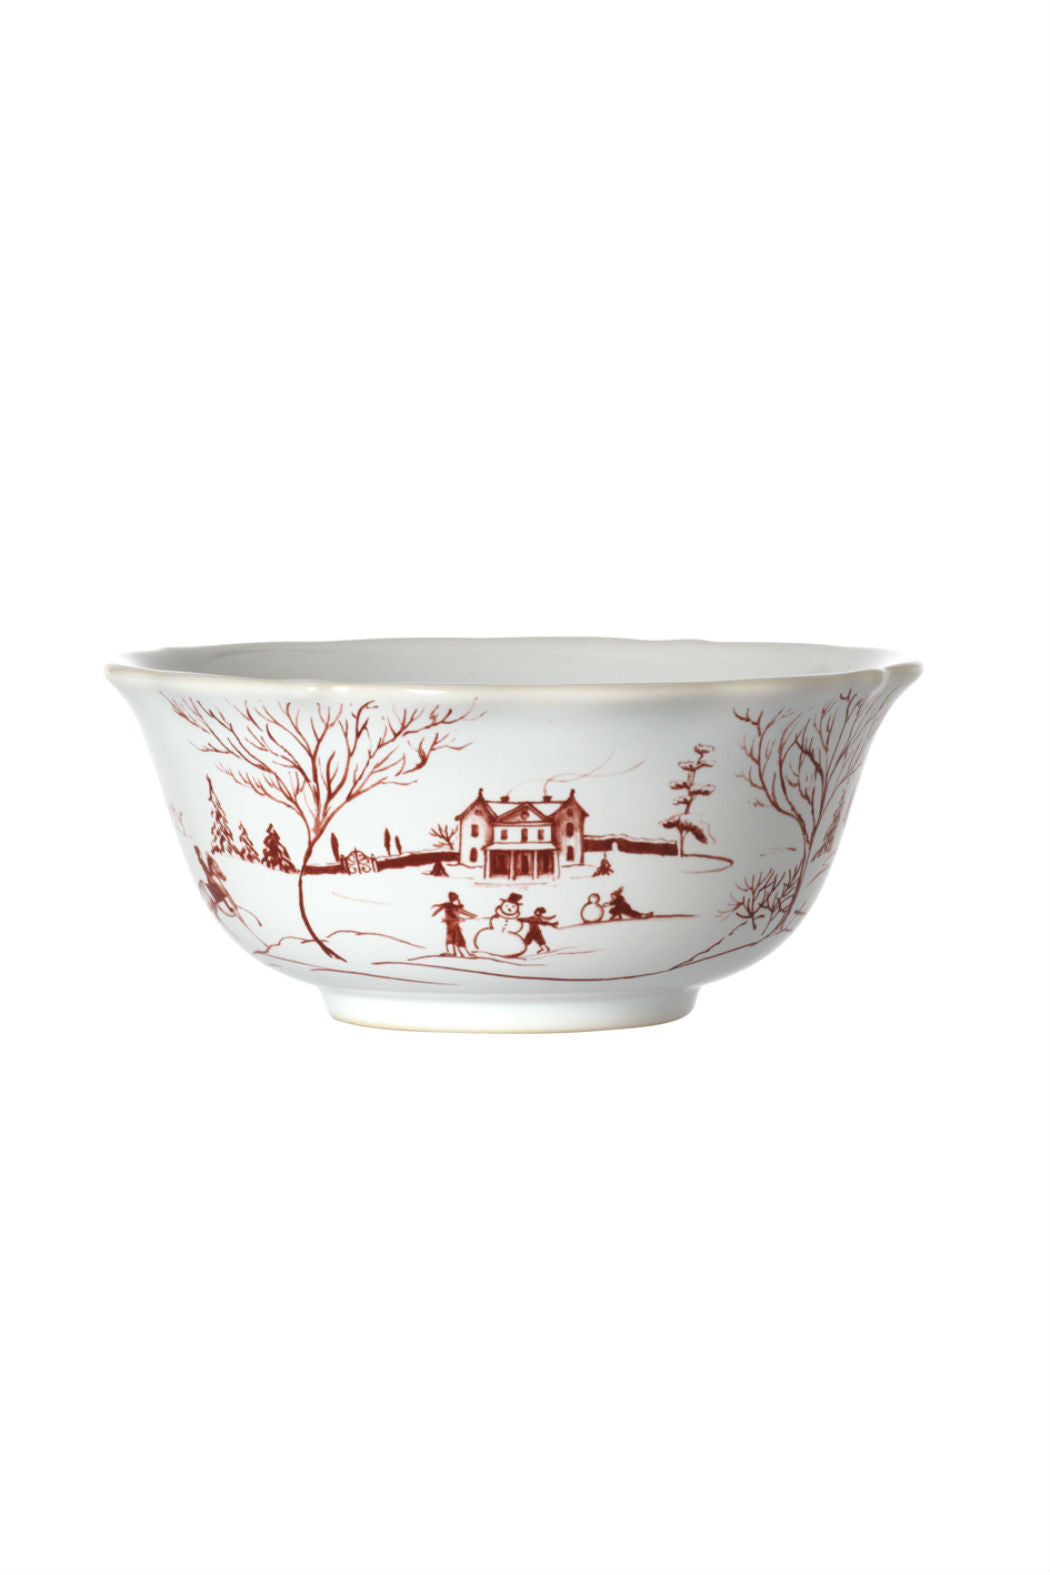 Juliska Country Winter Frolic Ruby Cereal Bowl - New Orientation  - 3